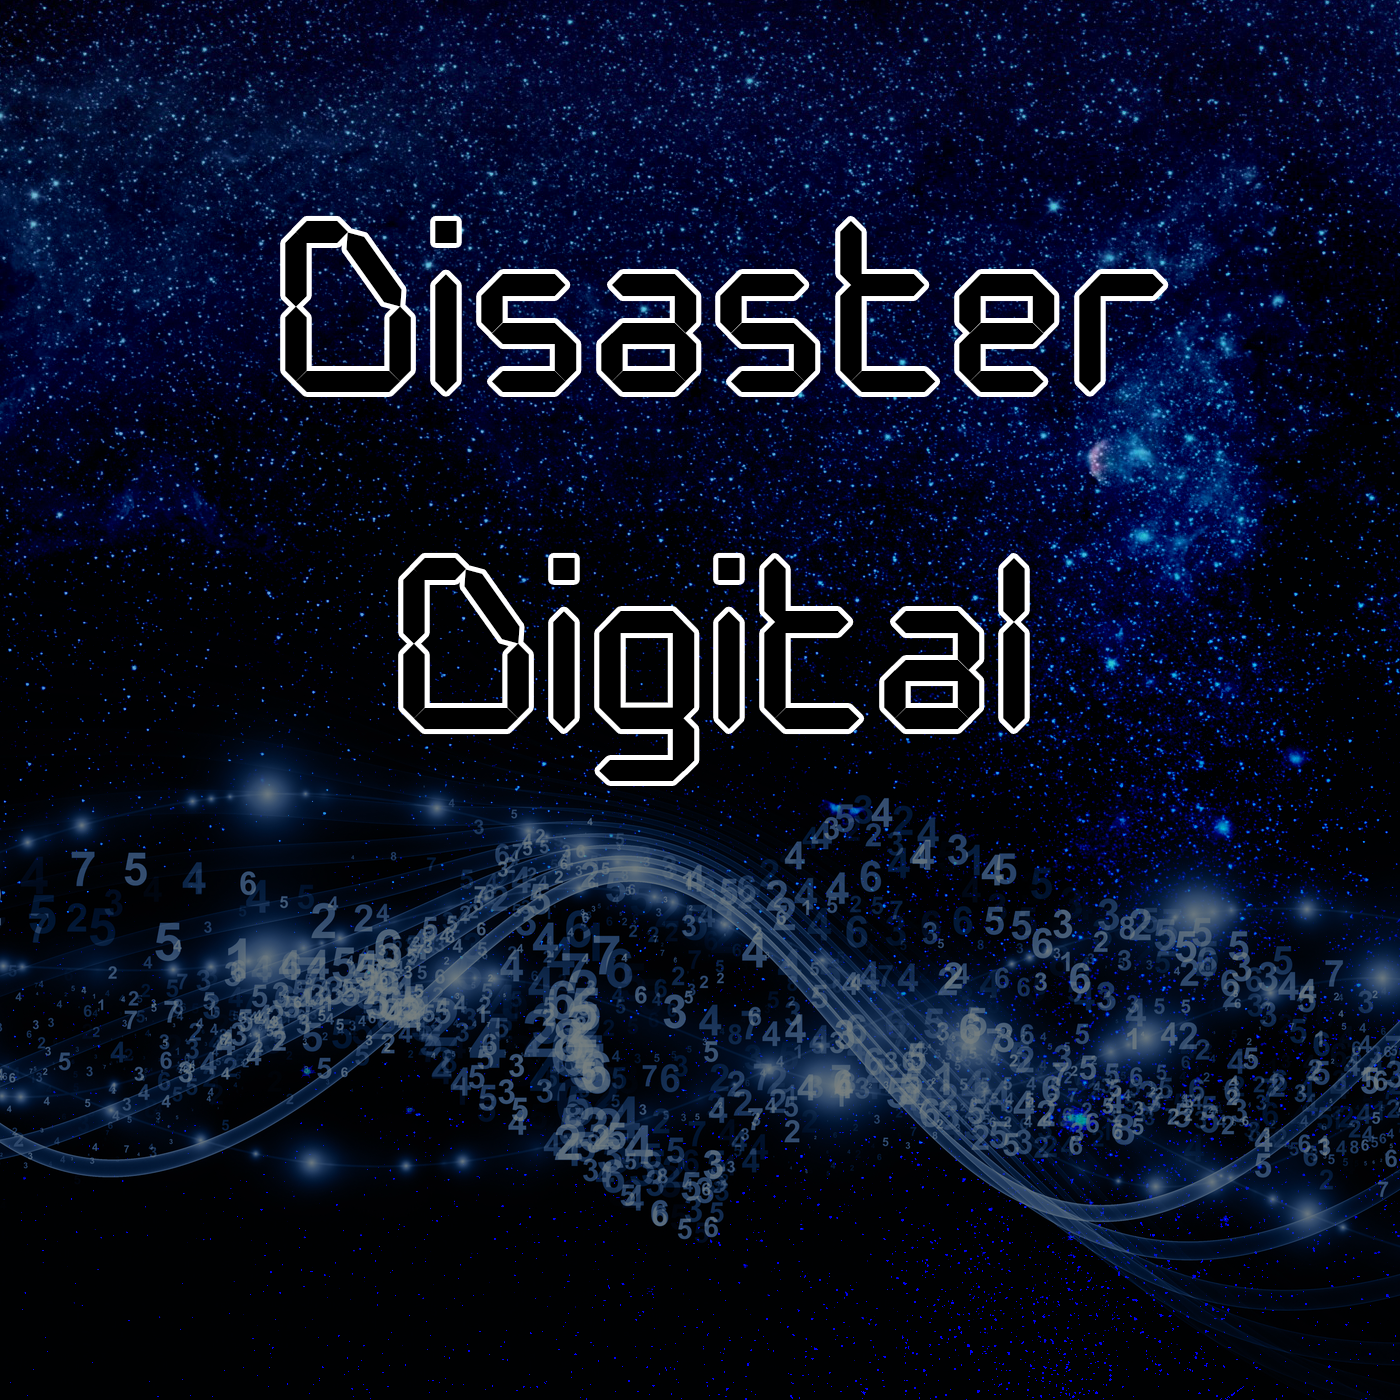 Disaster Digital